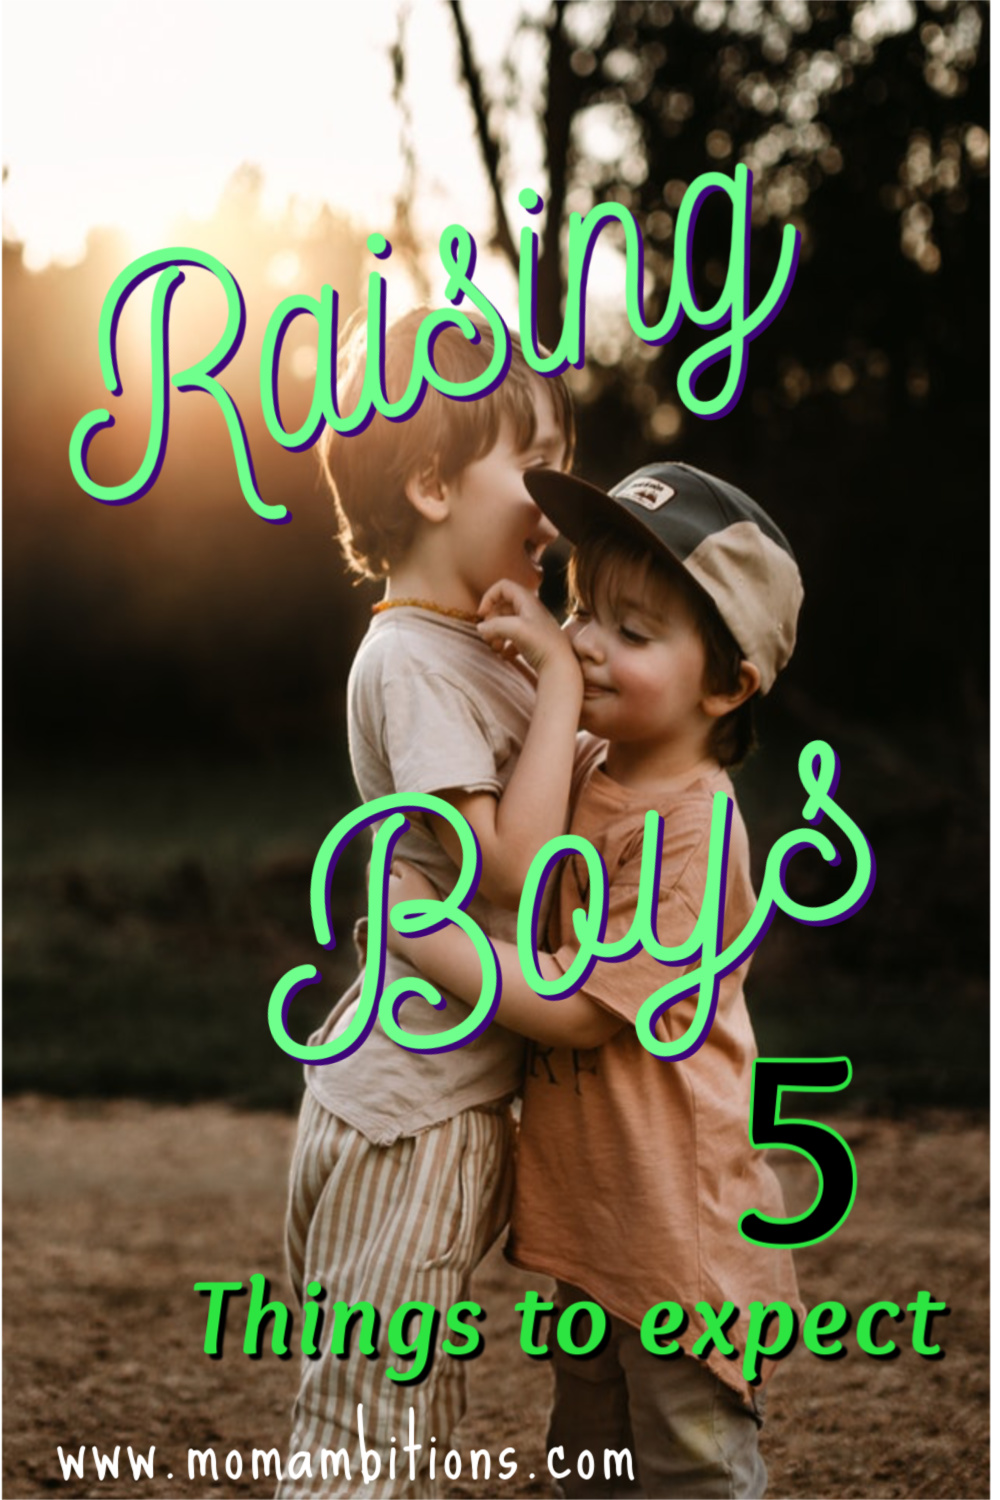 Raising Boys, here are 5 things to expect